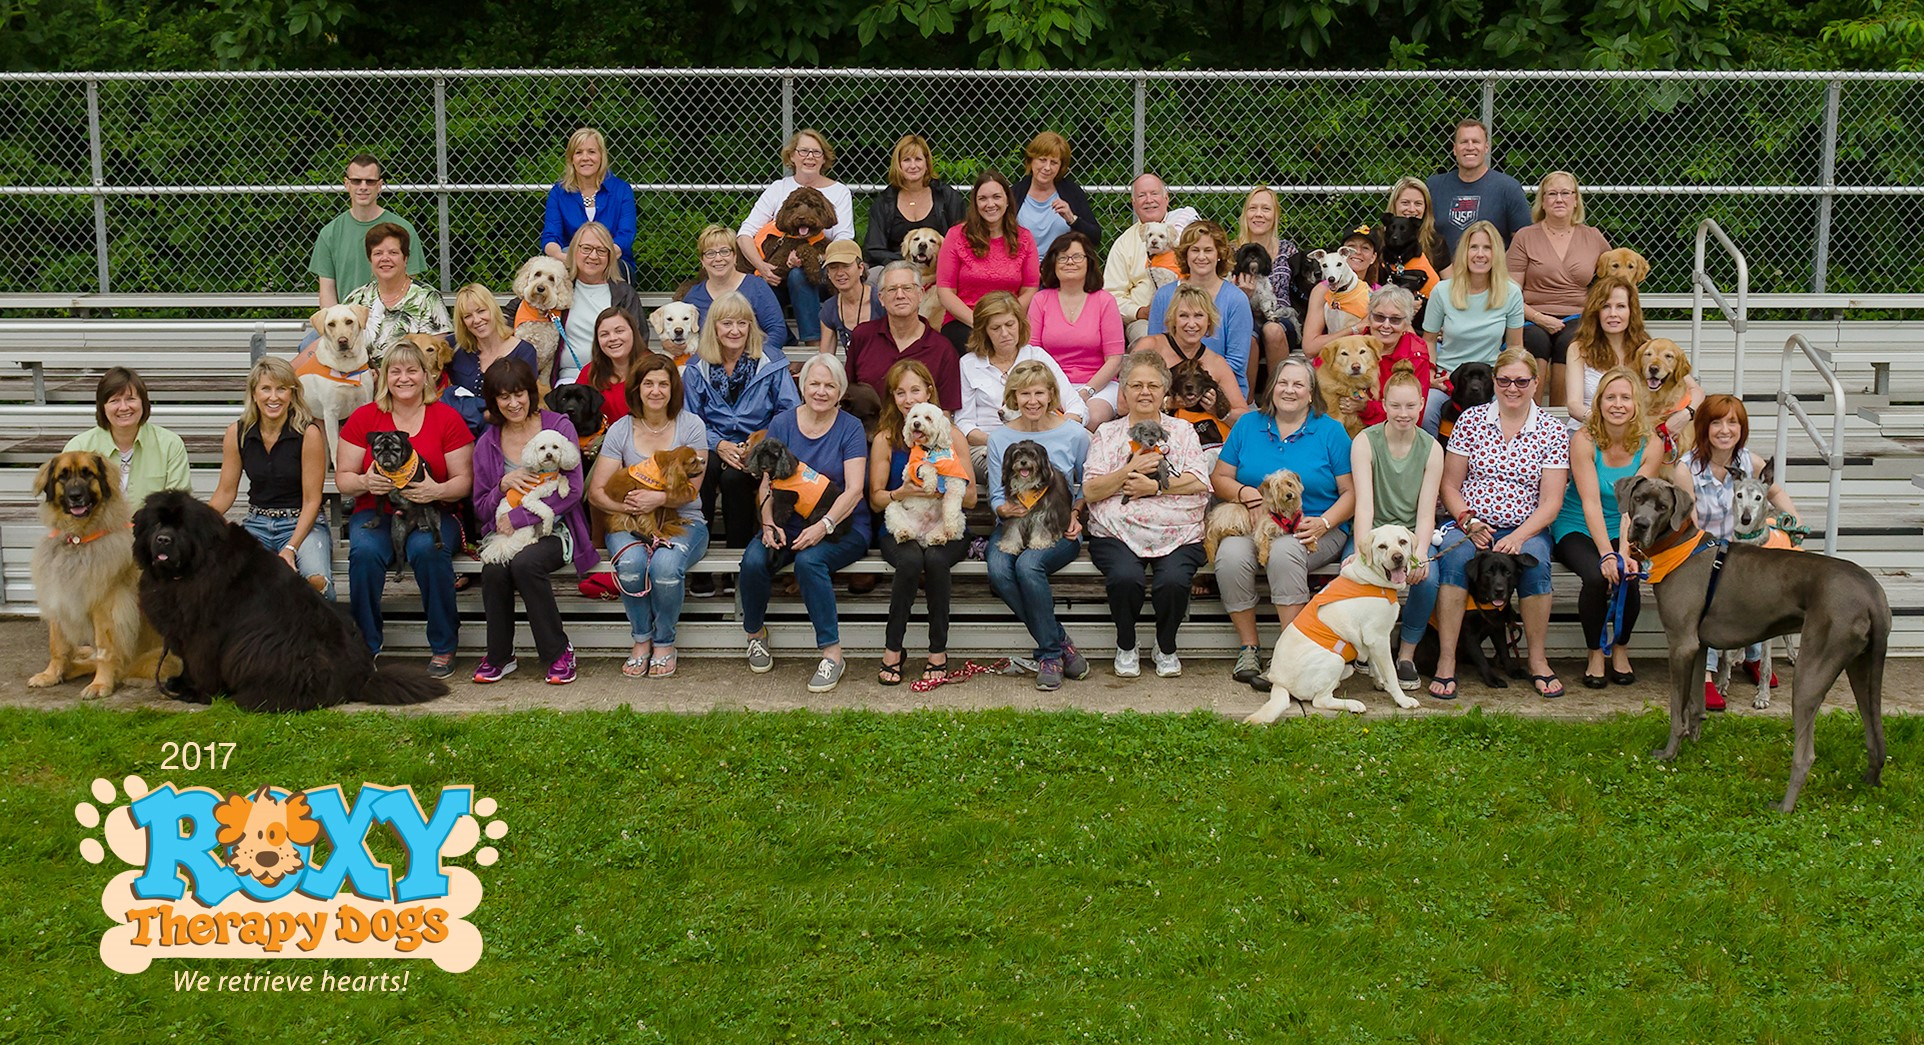 2017 Roxy Therapy Dogs Team Photo